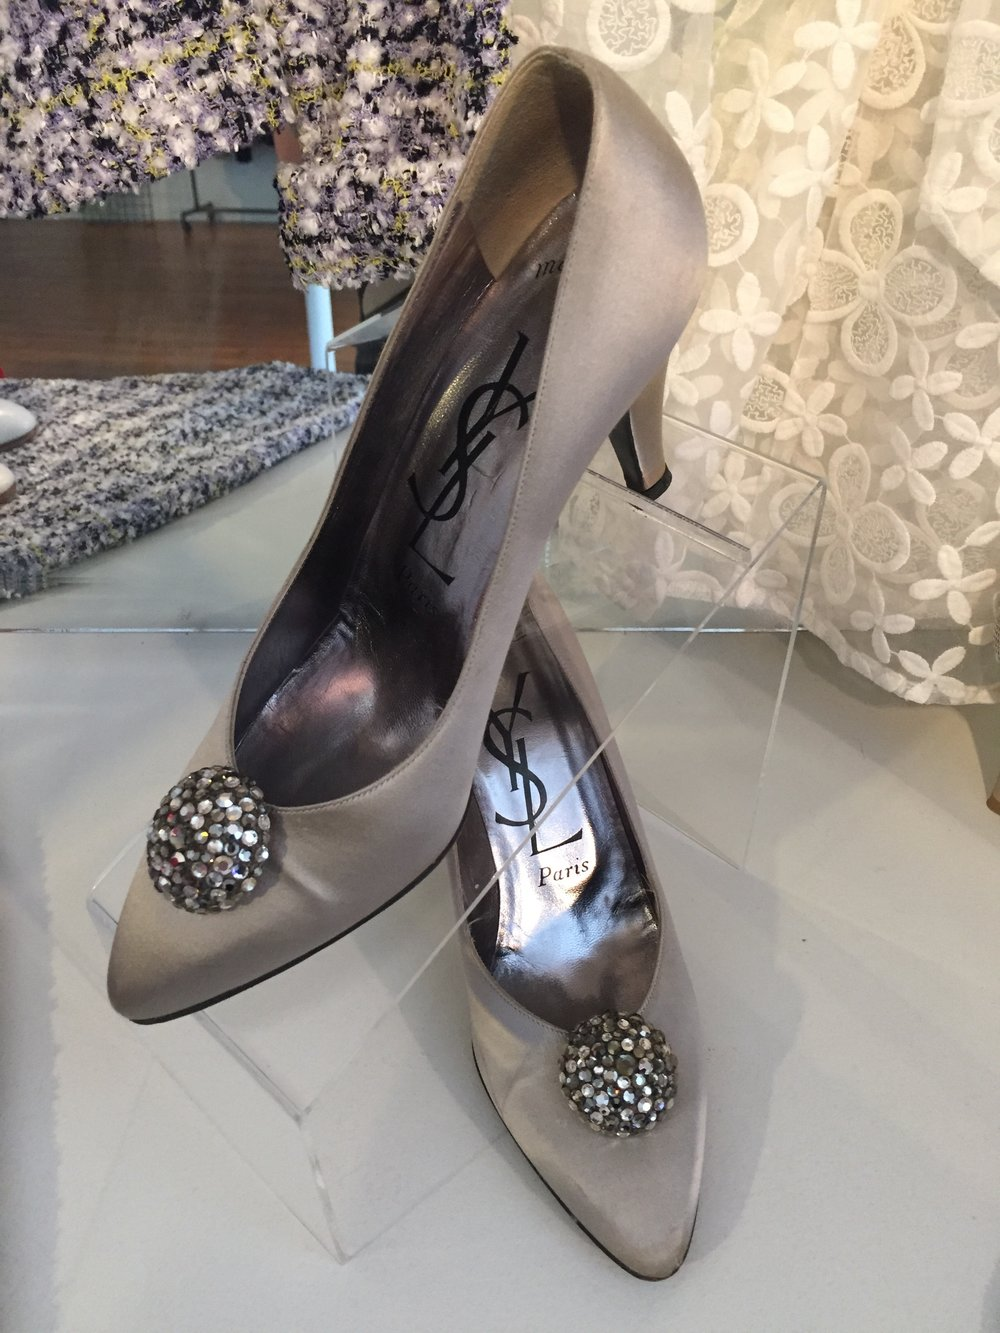 Vintage Yves Saint Laurent silver-grey pumps with embellishment. Size 8.5.